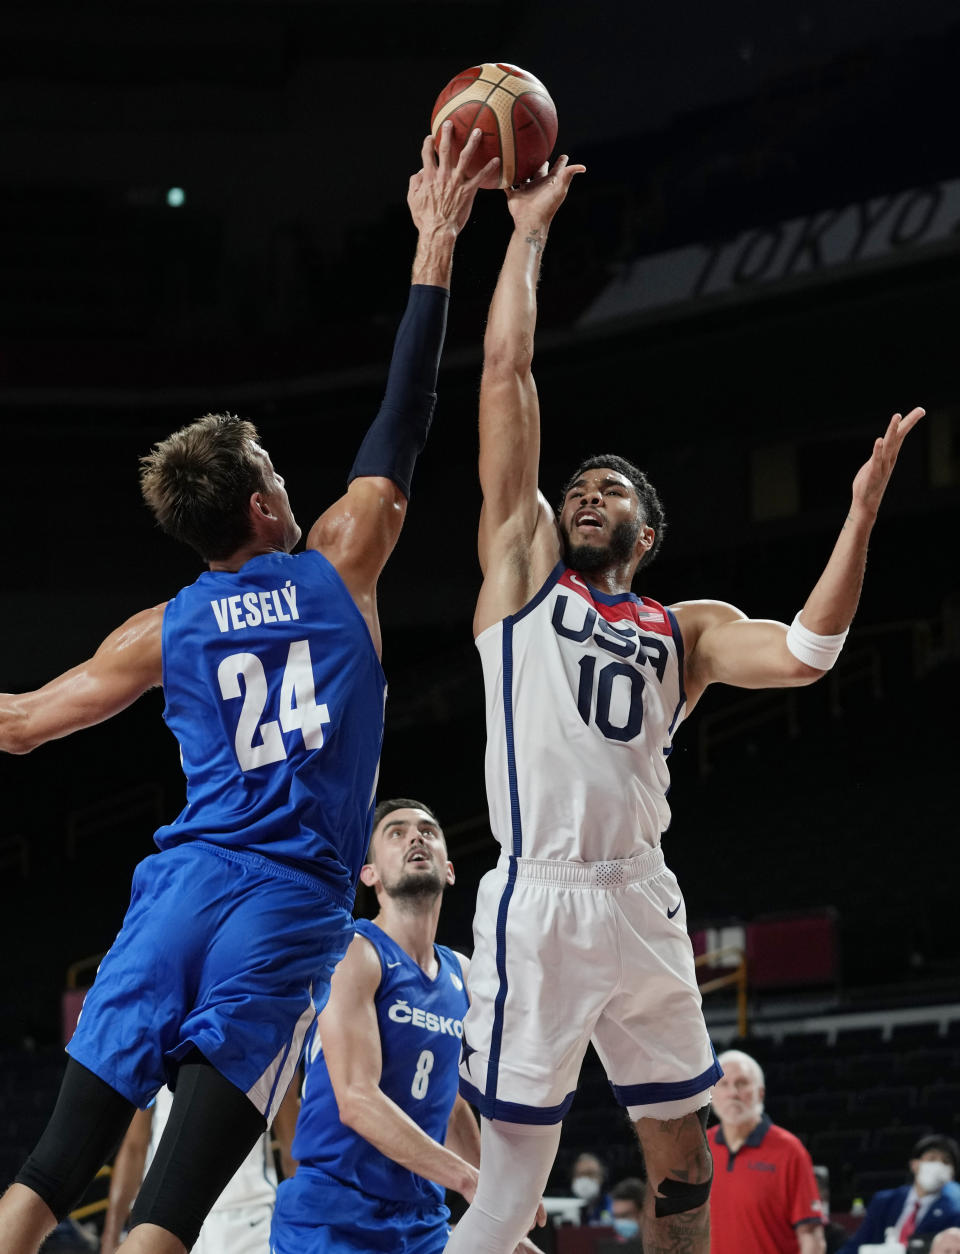 United States's Jayson Tatum (10) is blocked by Czech Republic's Jan Vesely (24) during a men's basketball preliminary round game at the 2020 Summer Olympics, Saturday, July 31, 2021, in Saitama, Japan. (AP Photo/Eric Gay)